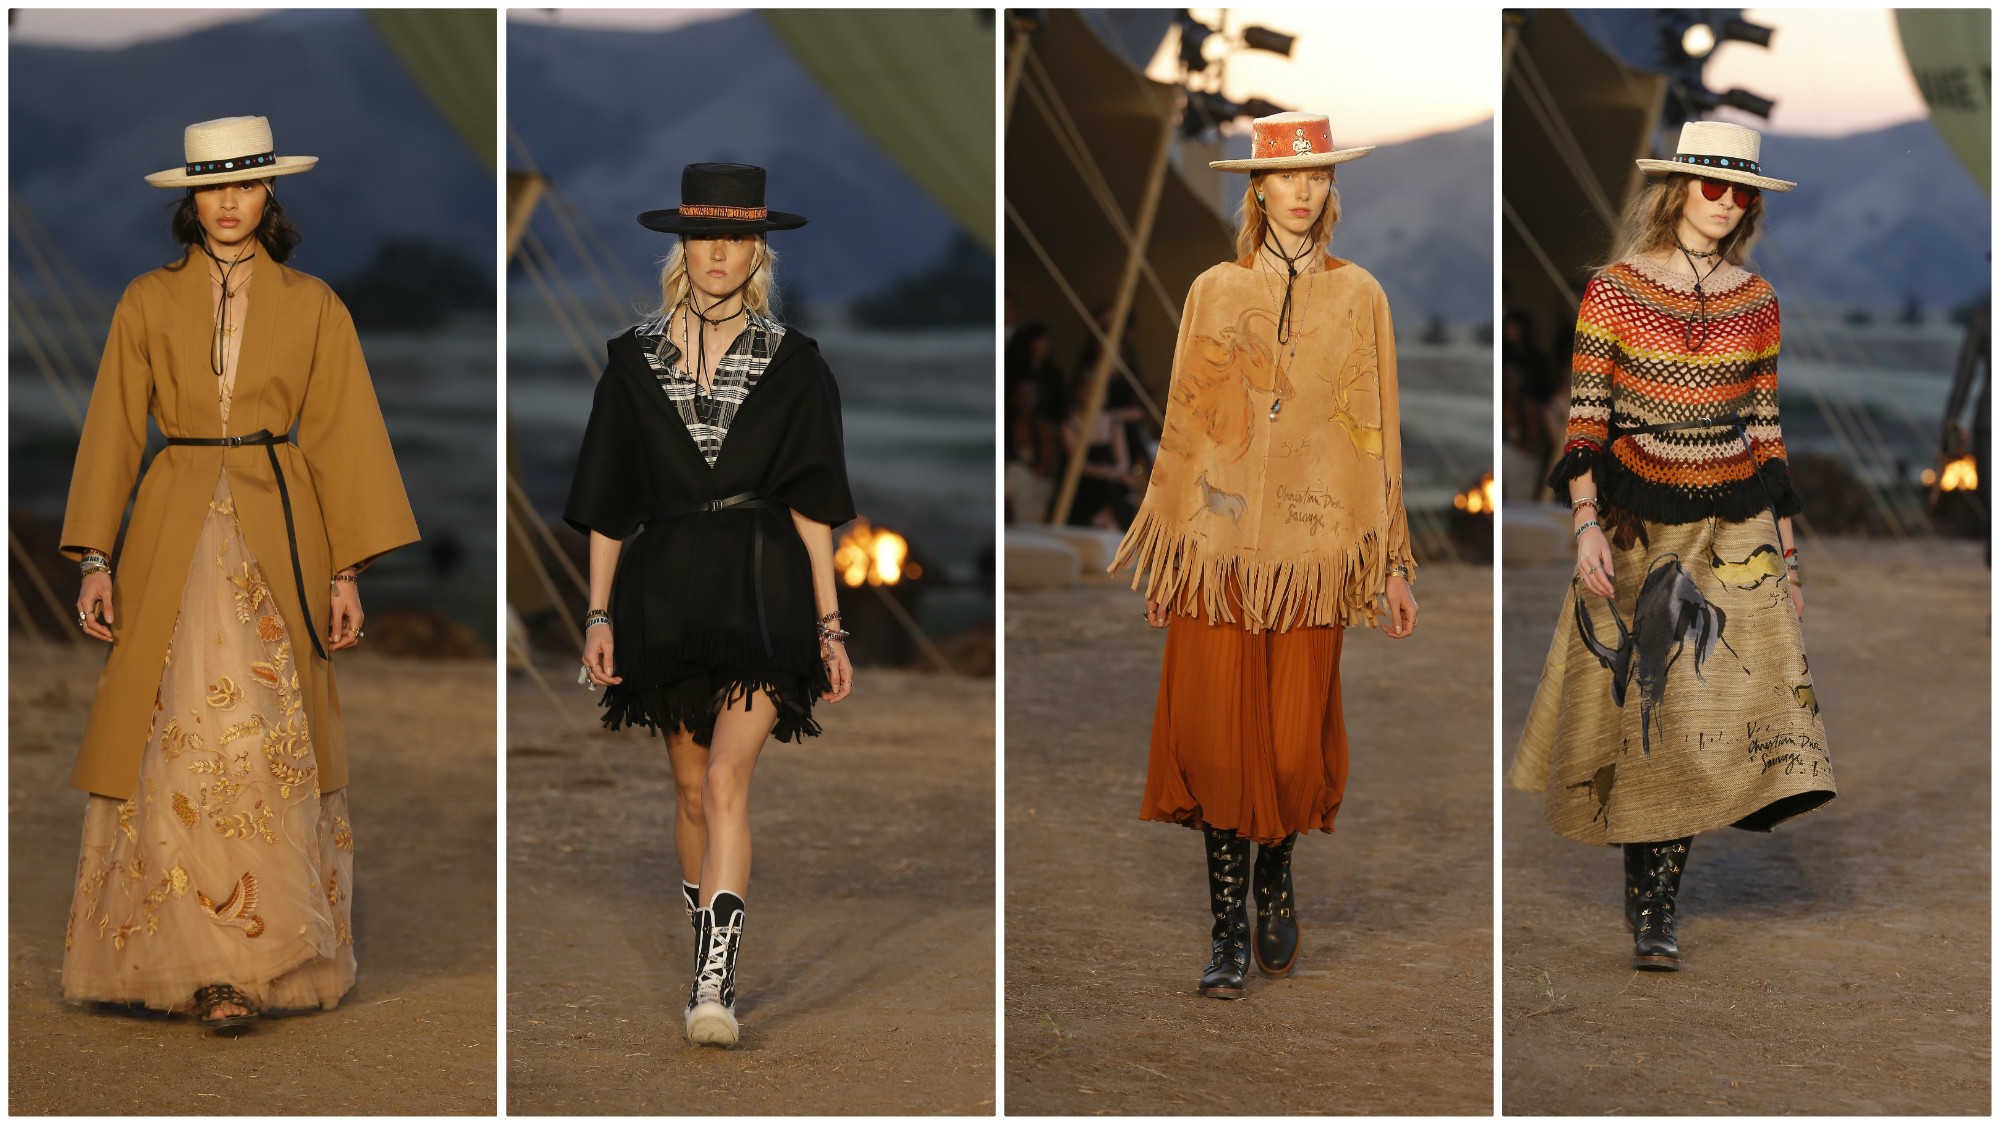 The Dior 2018 cruise collection was heavy on the Southwestern vibe with lots of belted coats, western fringe and a recurring woven-blanket stripe.